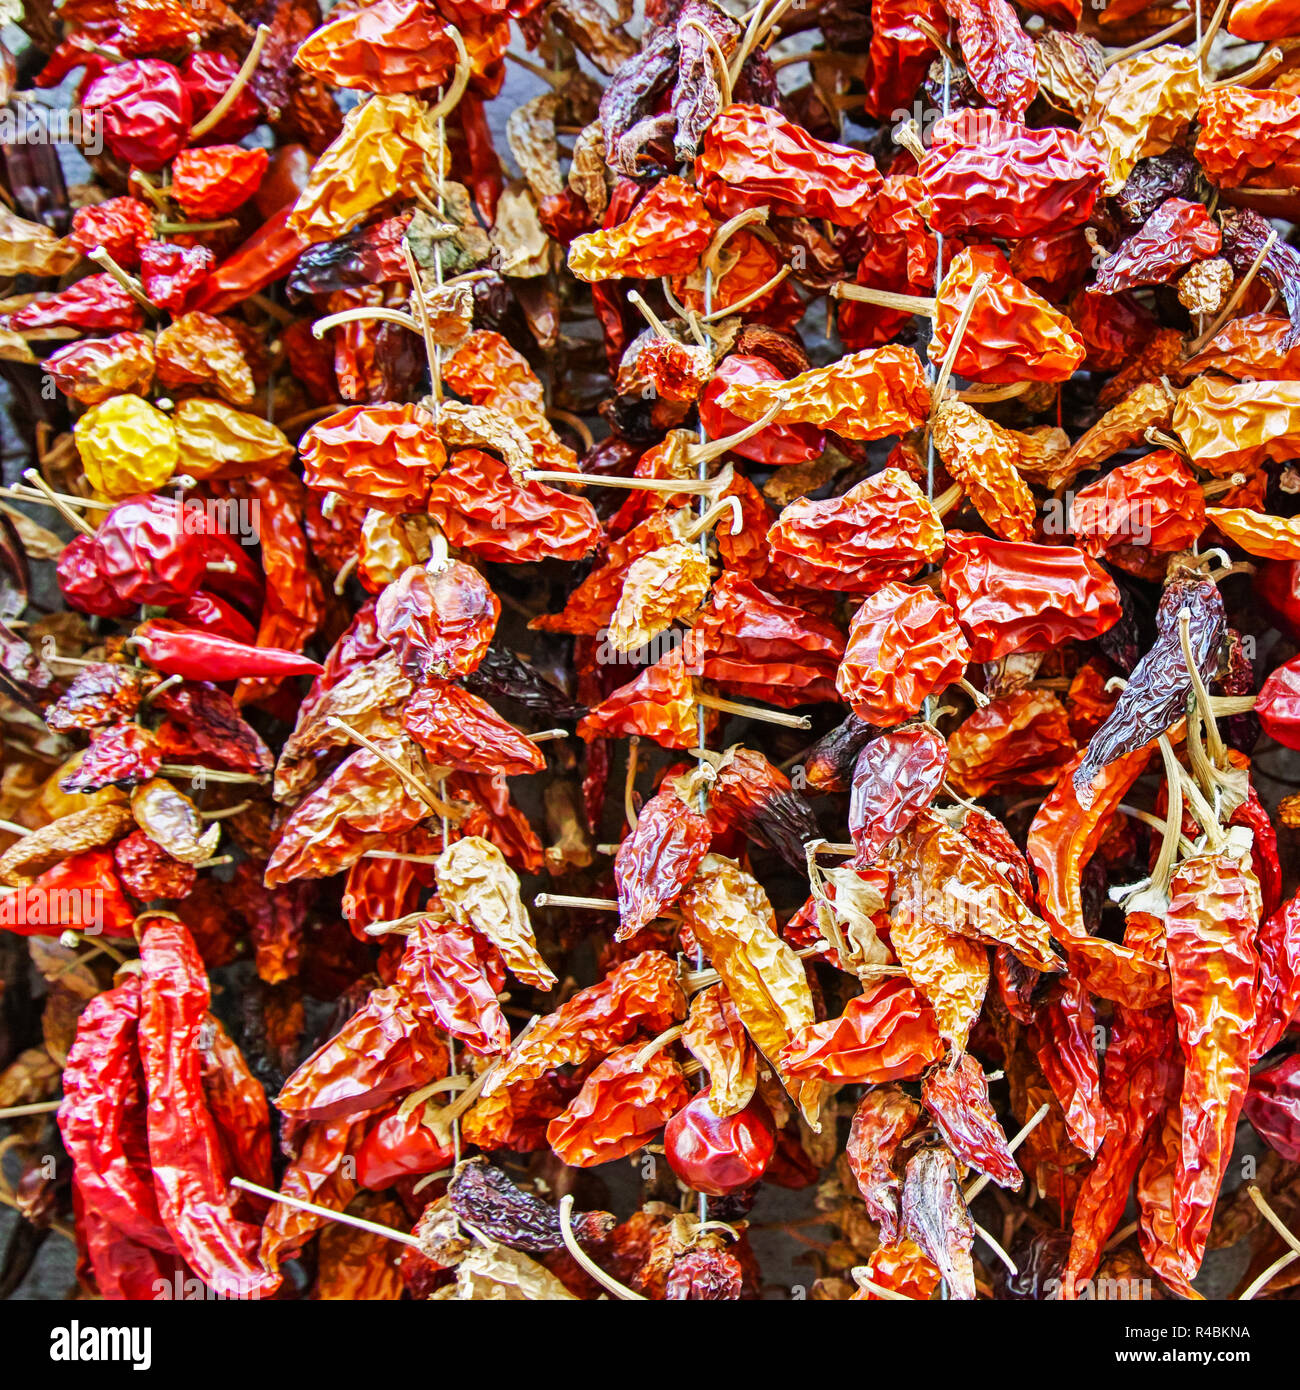 dried red chili on market - Stock Image